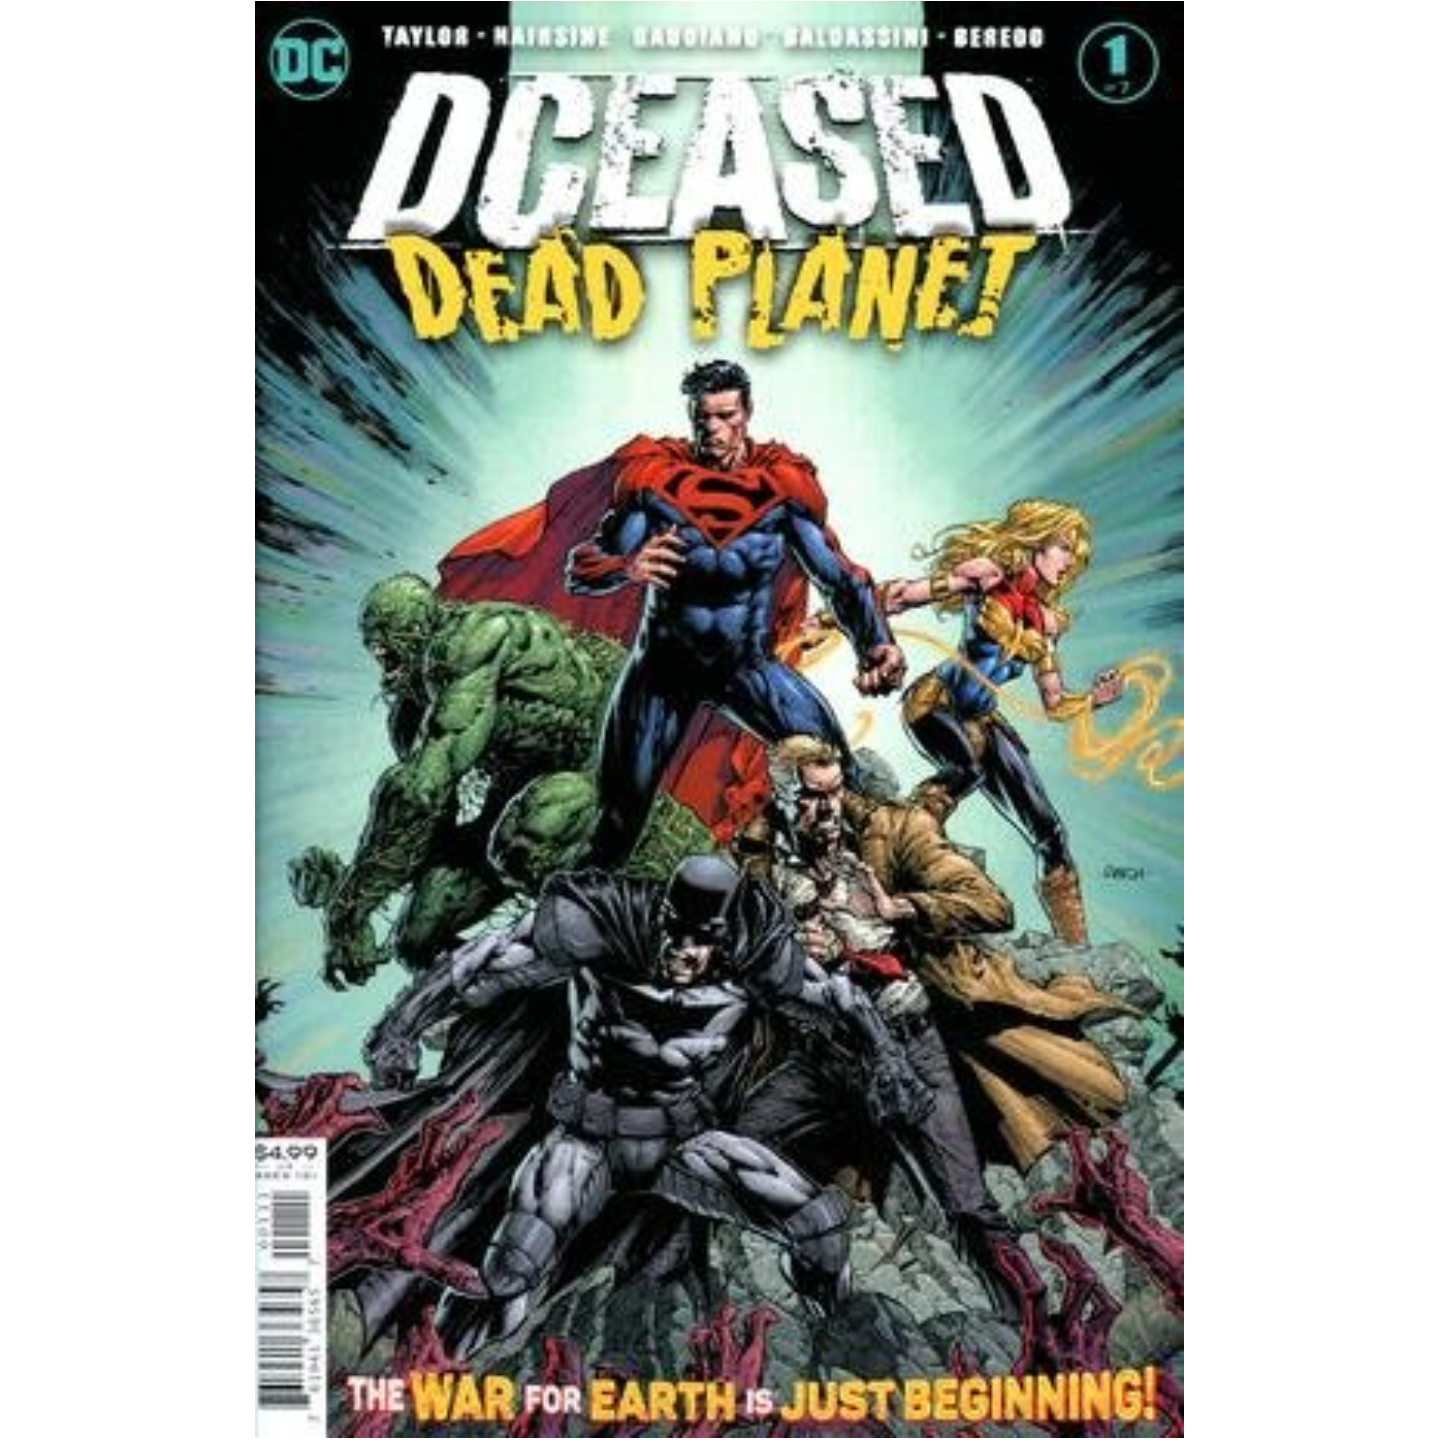 DCEASED DEAD PLANET #1 (OF 6) CVR A DAVID FINCH